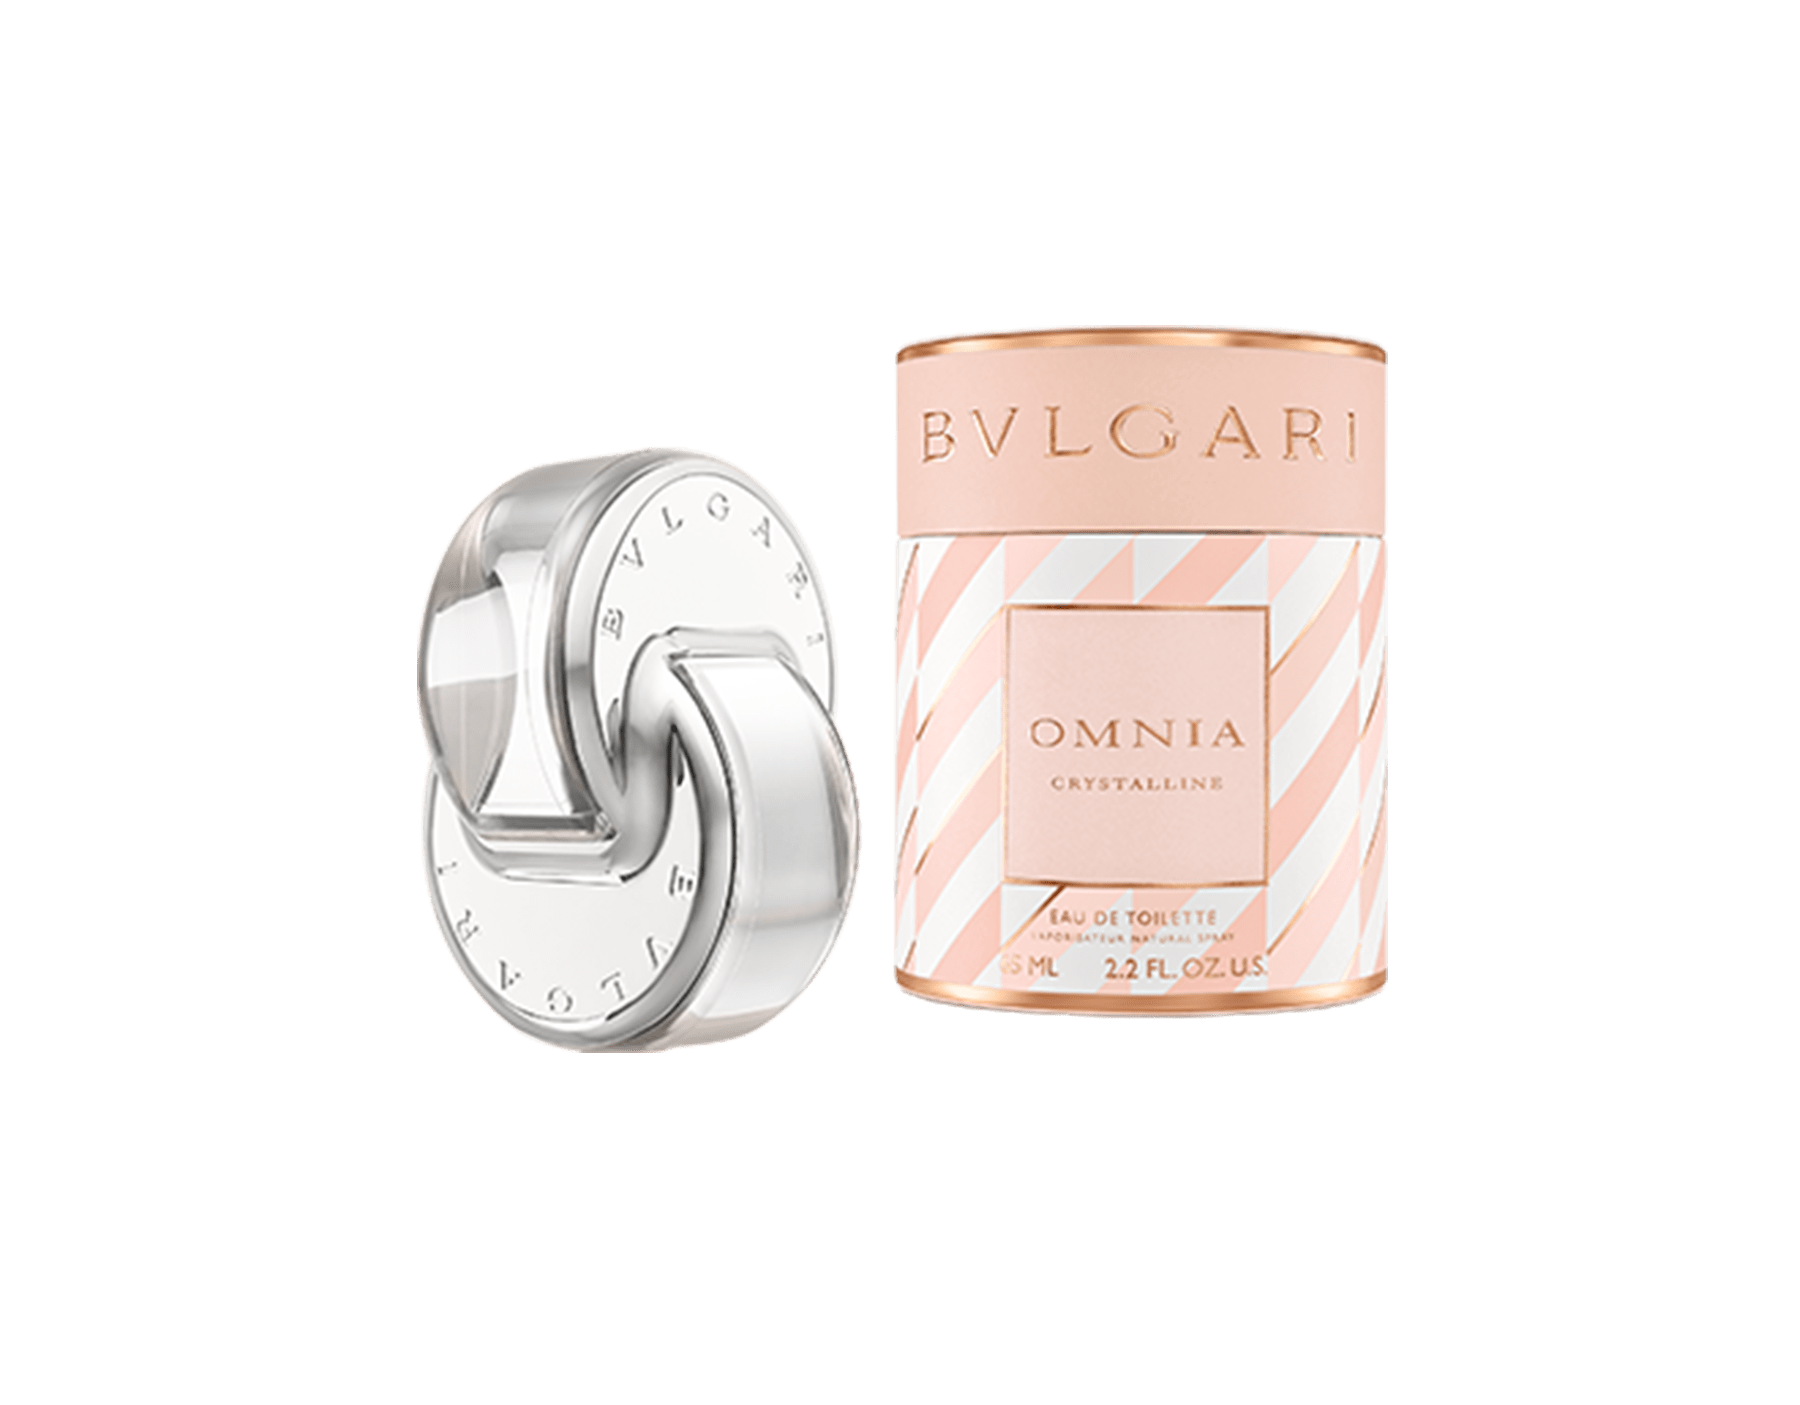 Available only in selected BVLGARI stores. Please contact customer service for further information. 40556 image 1